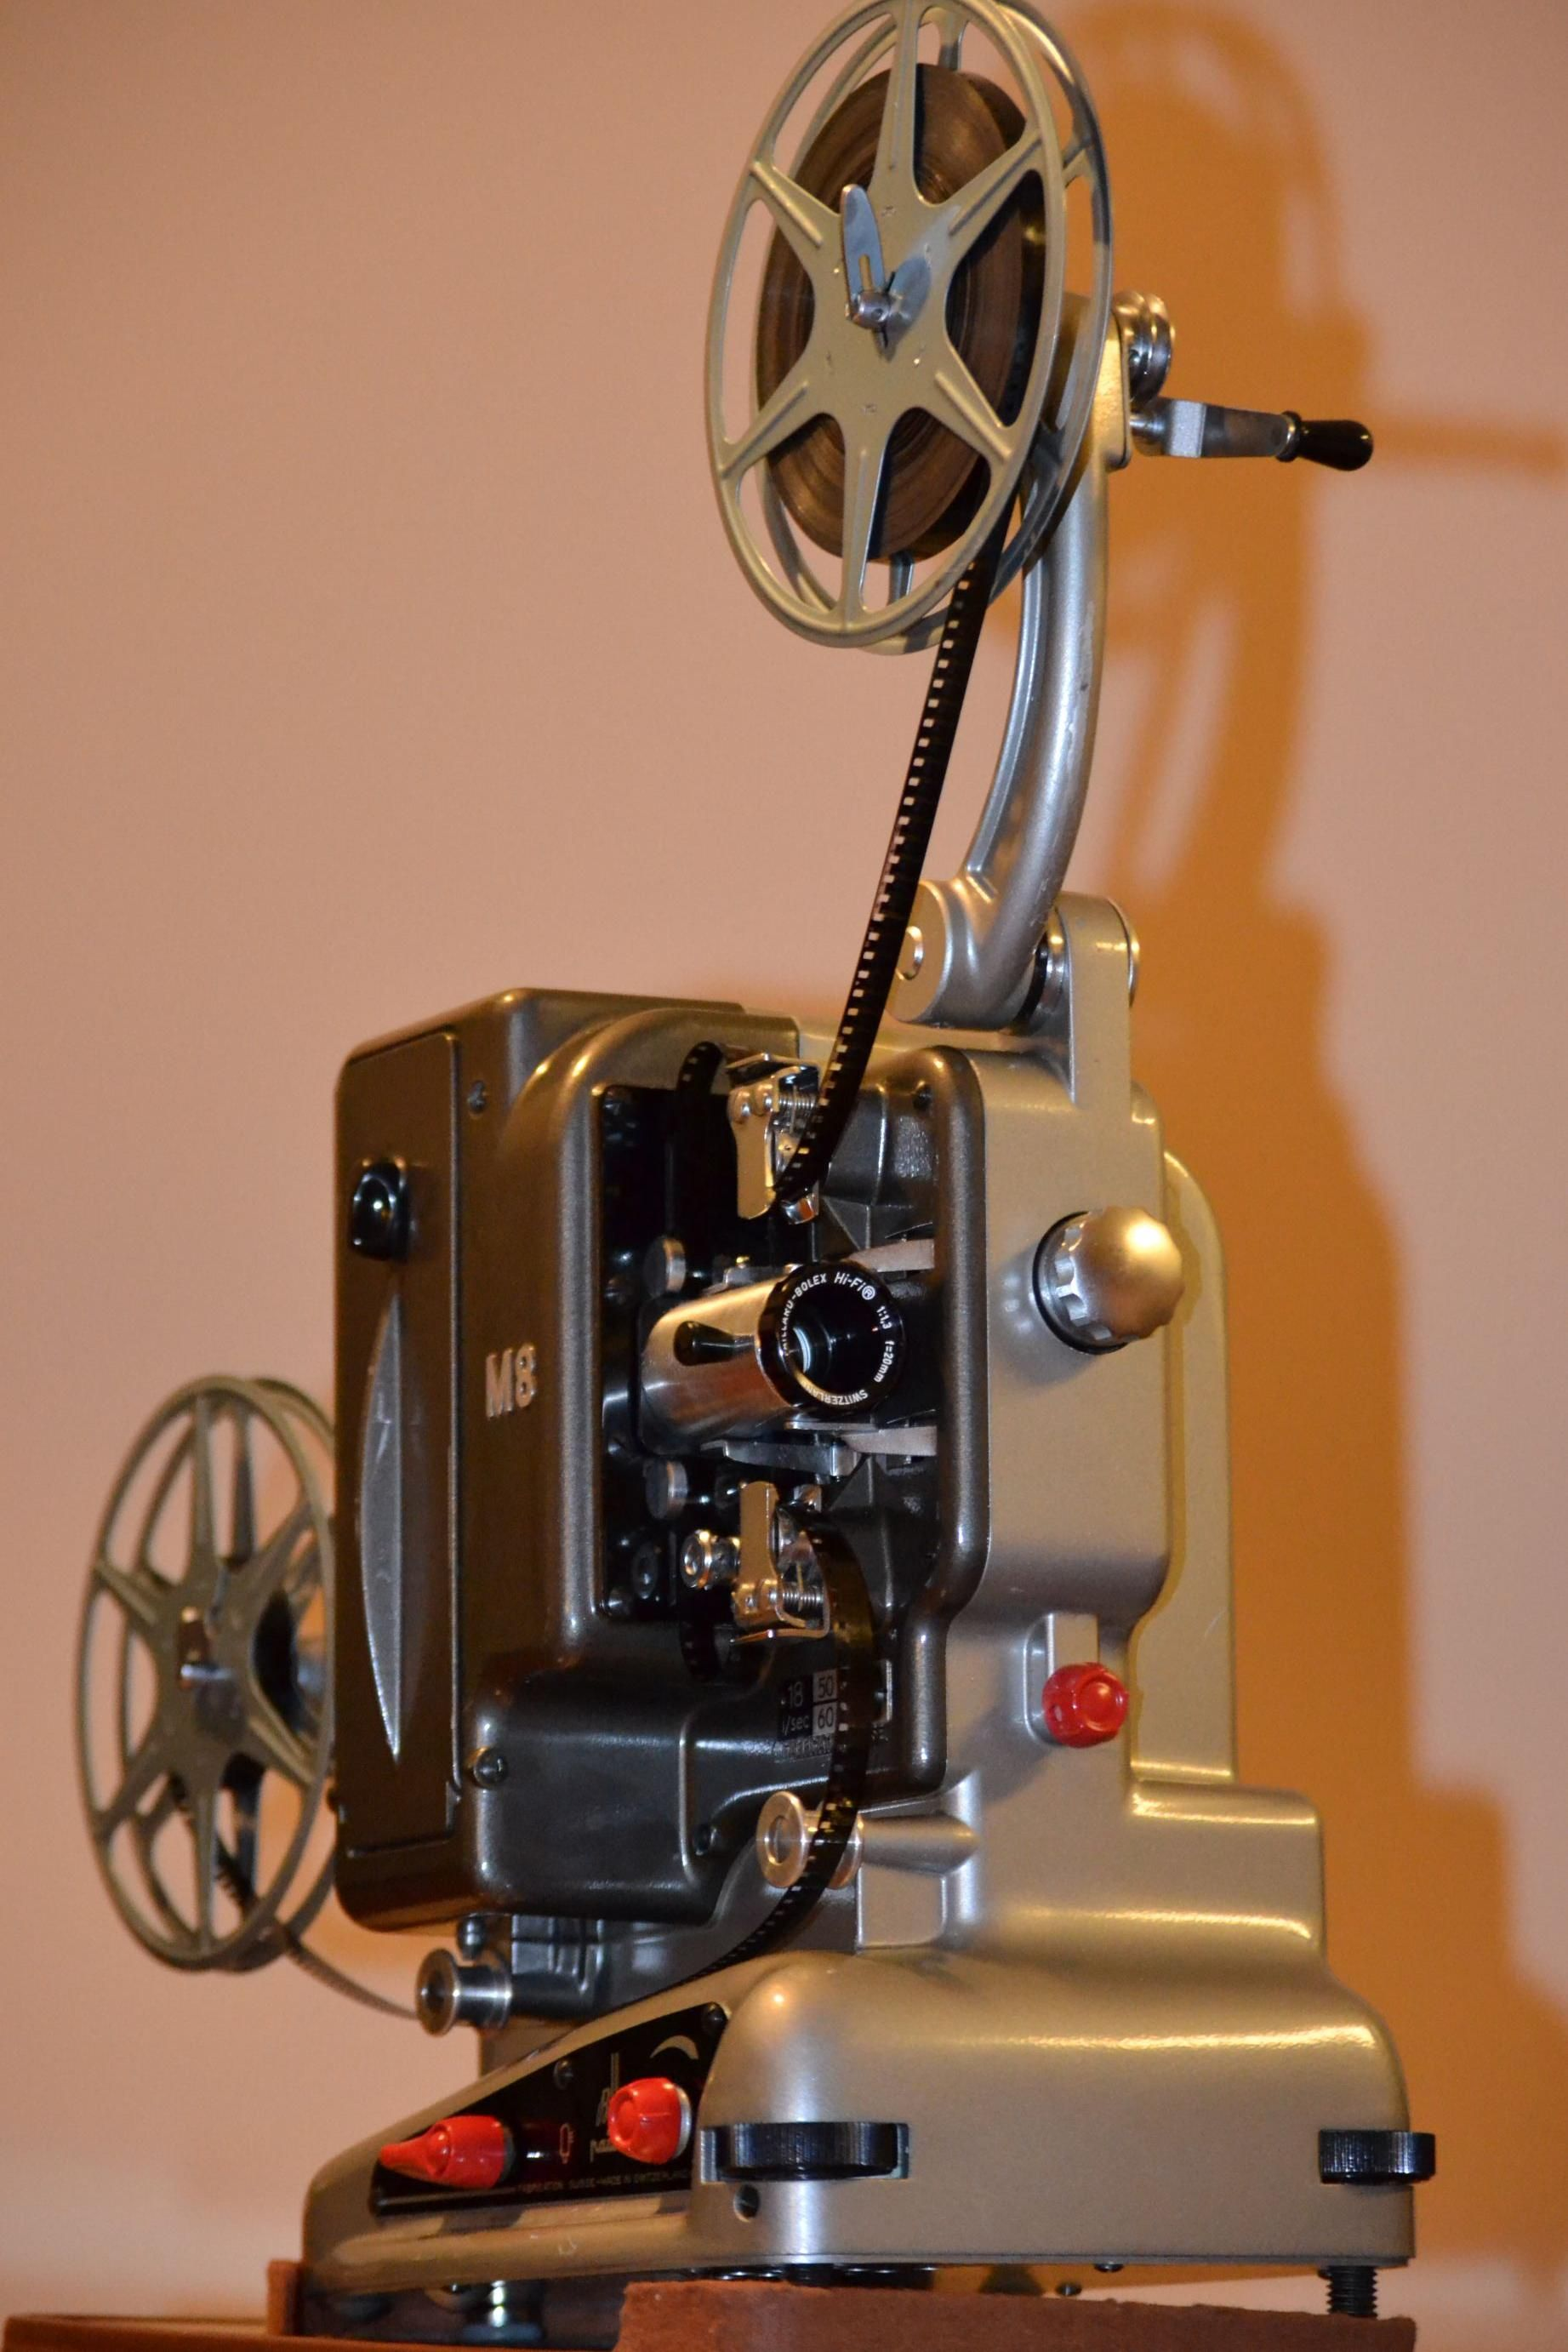 I recently inherited this gorgeous 8mm film projector from